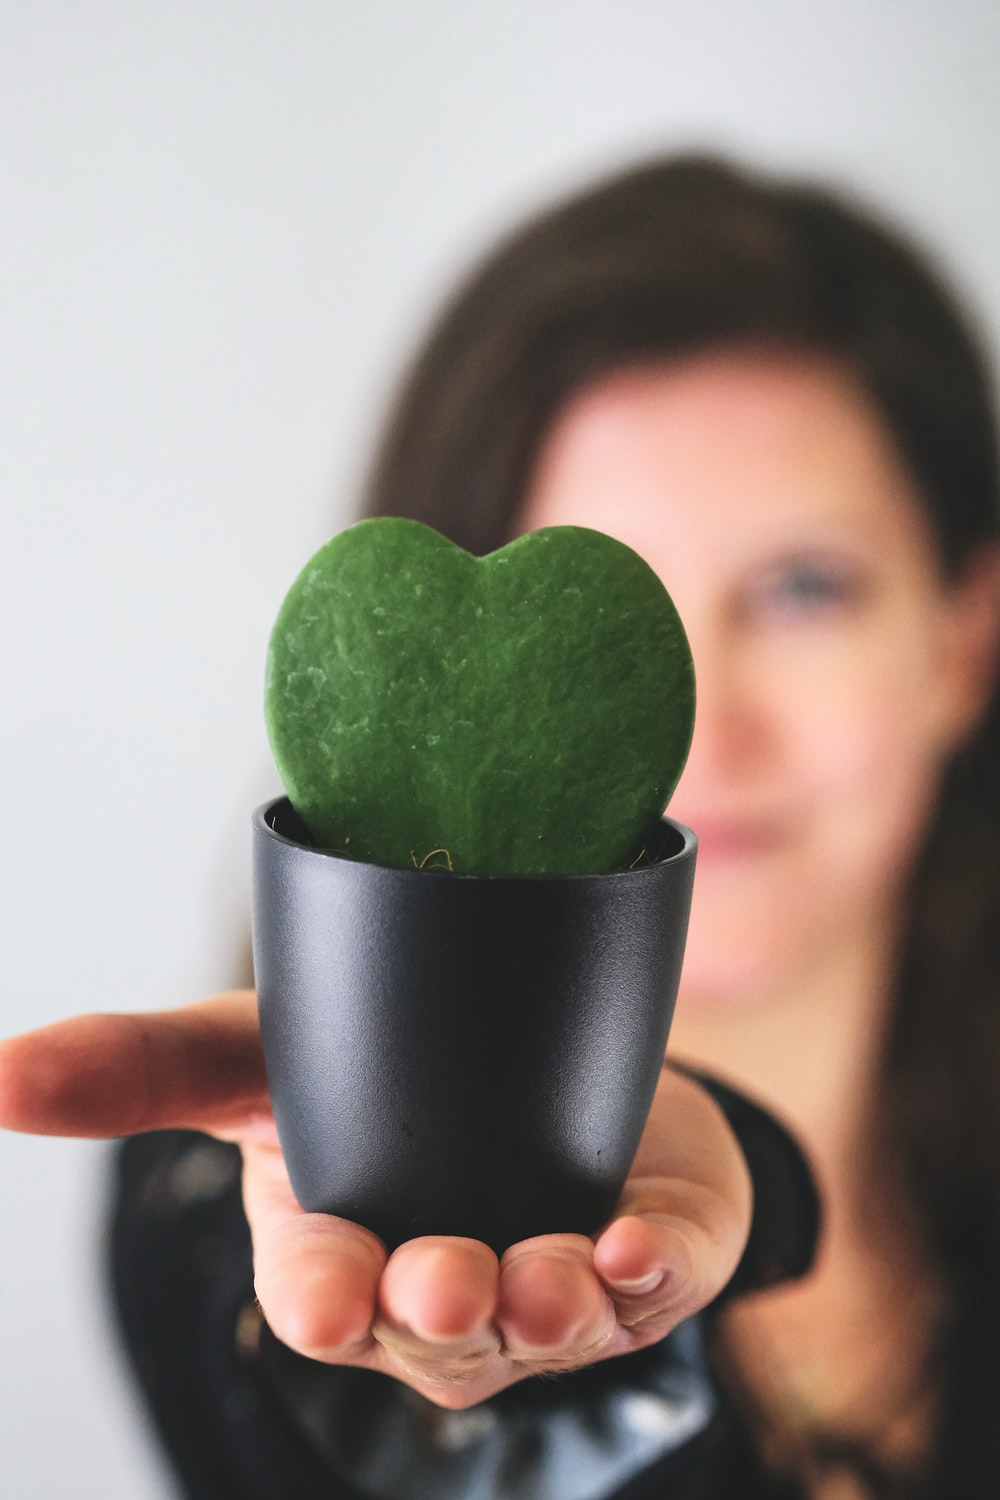 person holding green heart shaped fruit